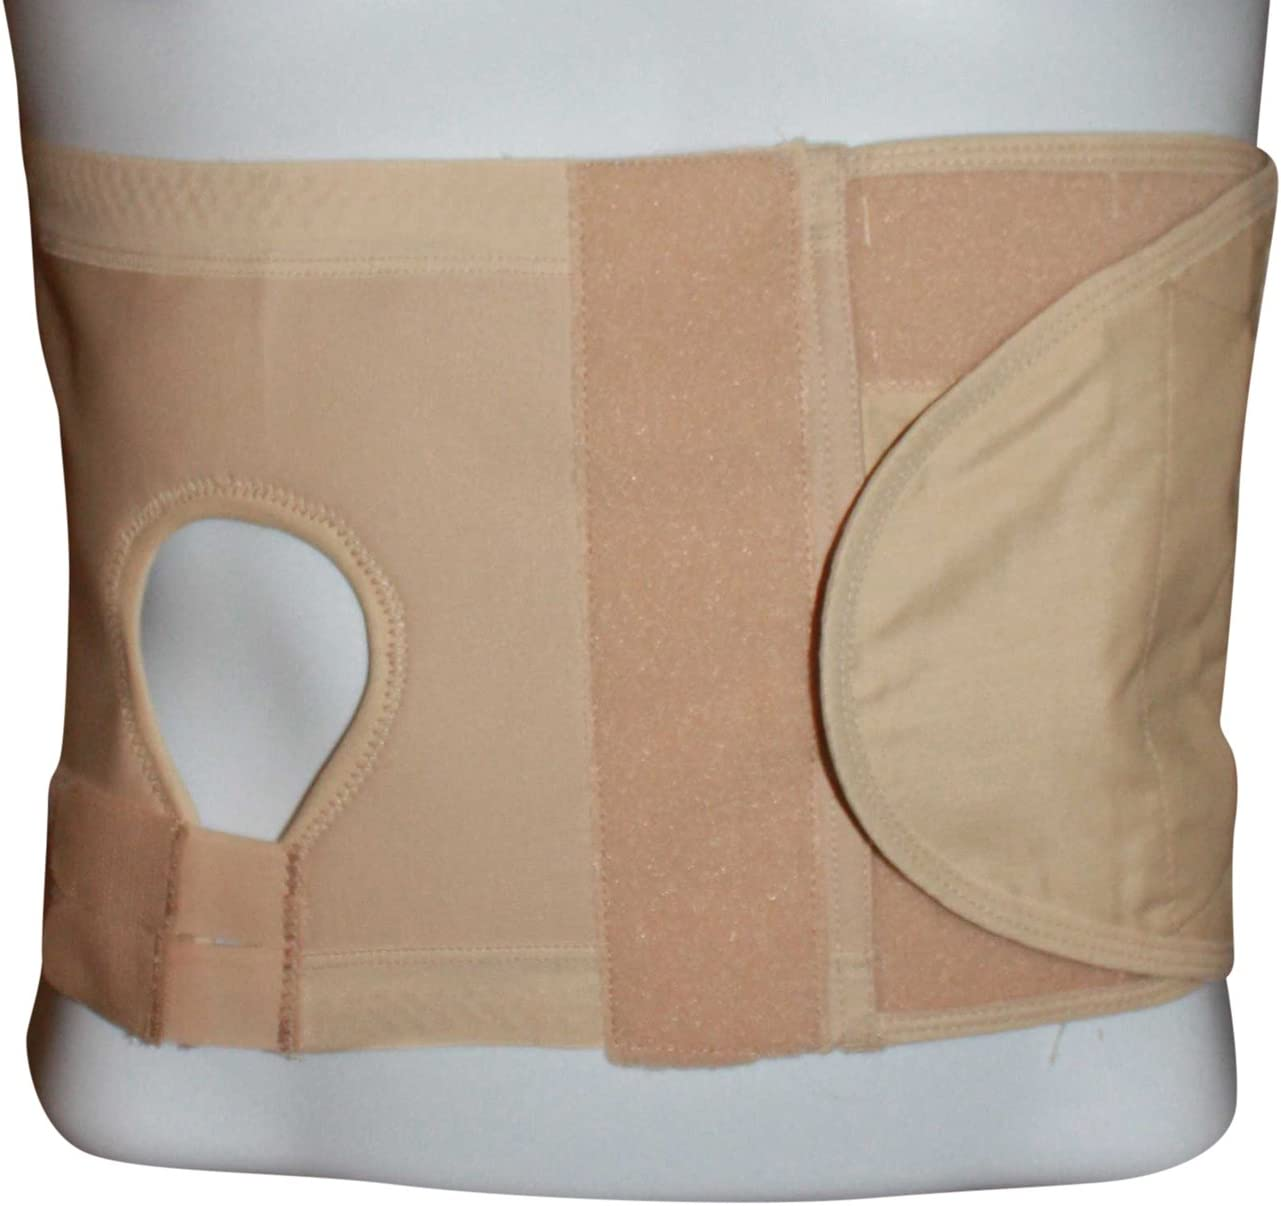 Safe n' Simple Unisex Ostomy Support 信託 バーゲンセール Belt Adjustable with Hernia